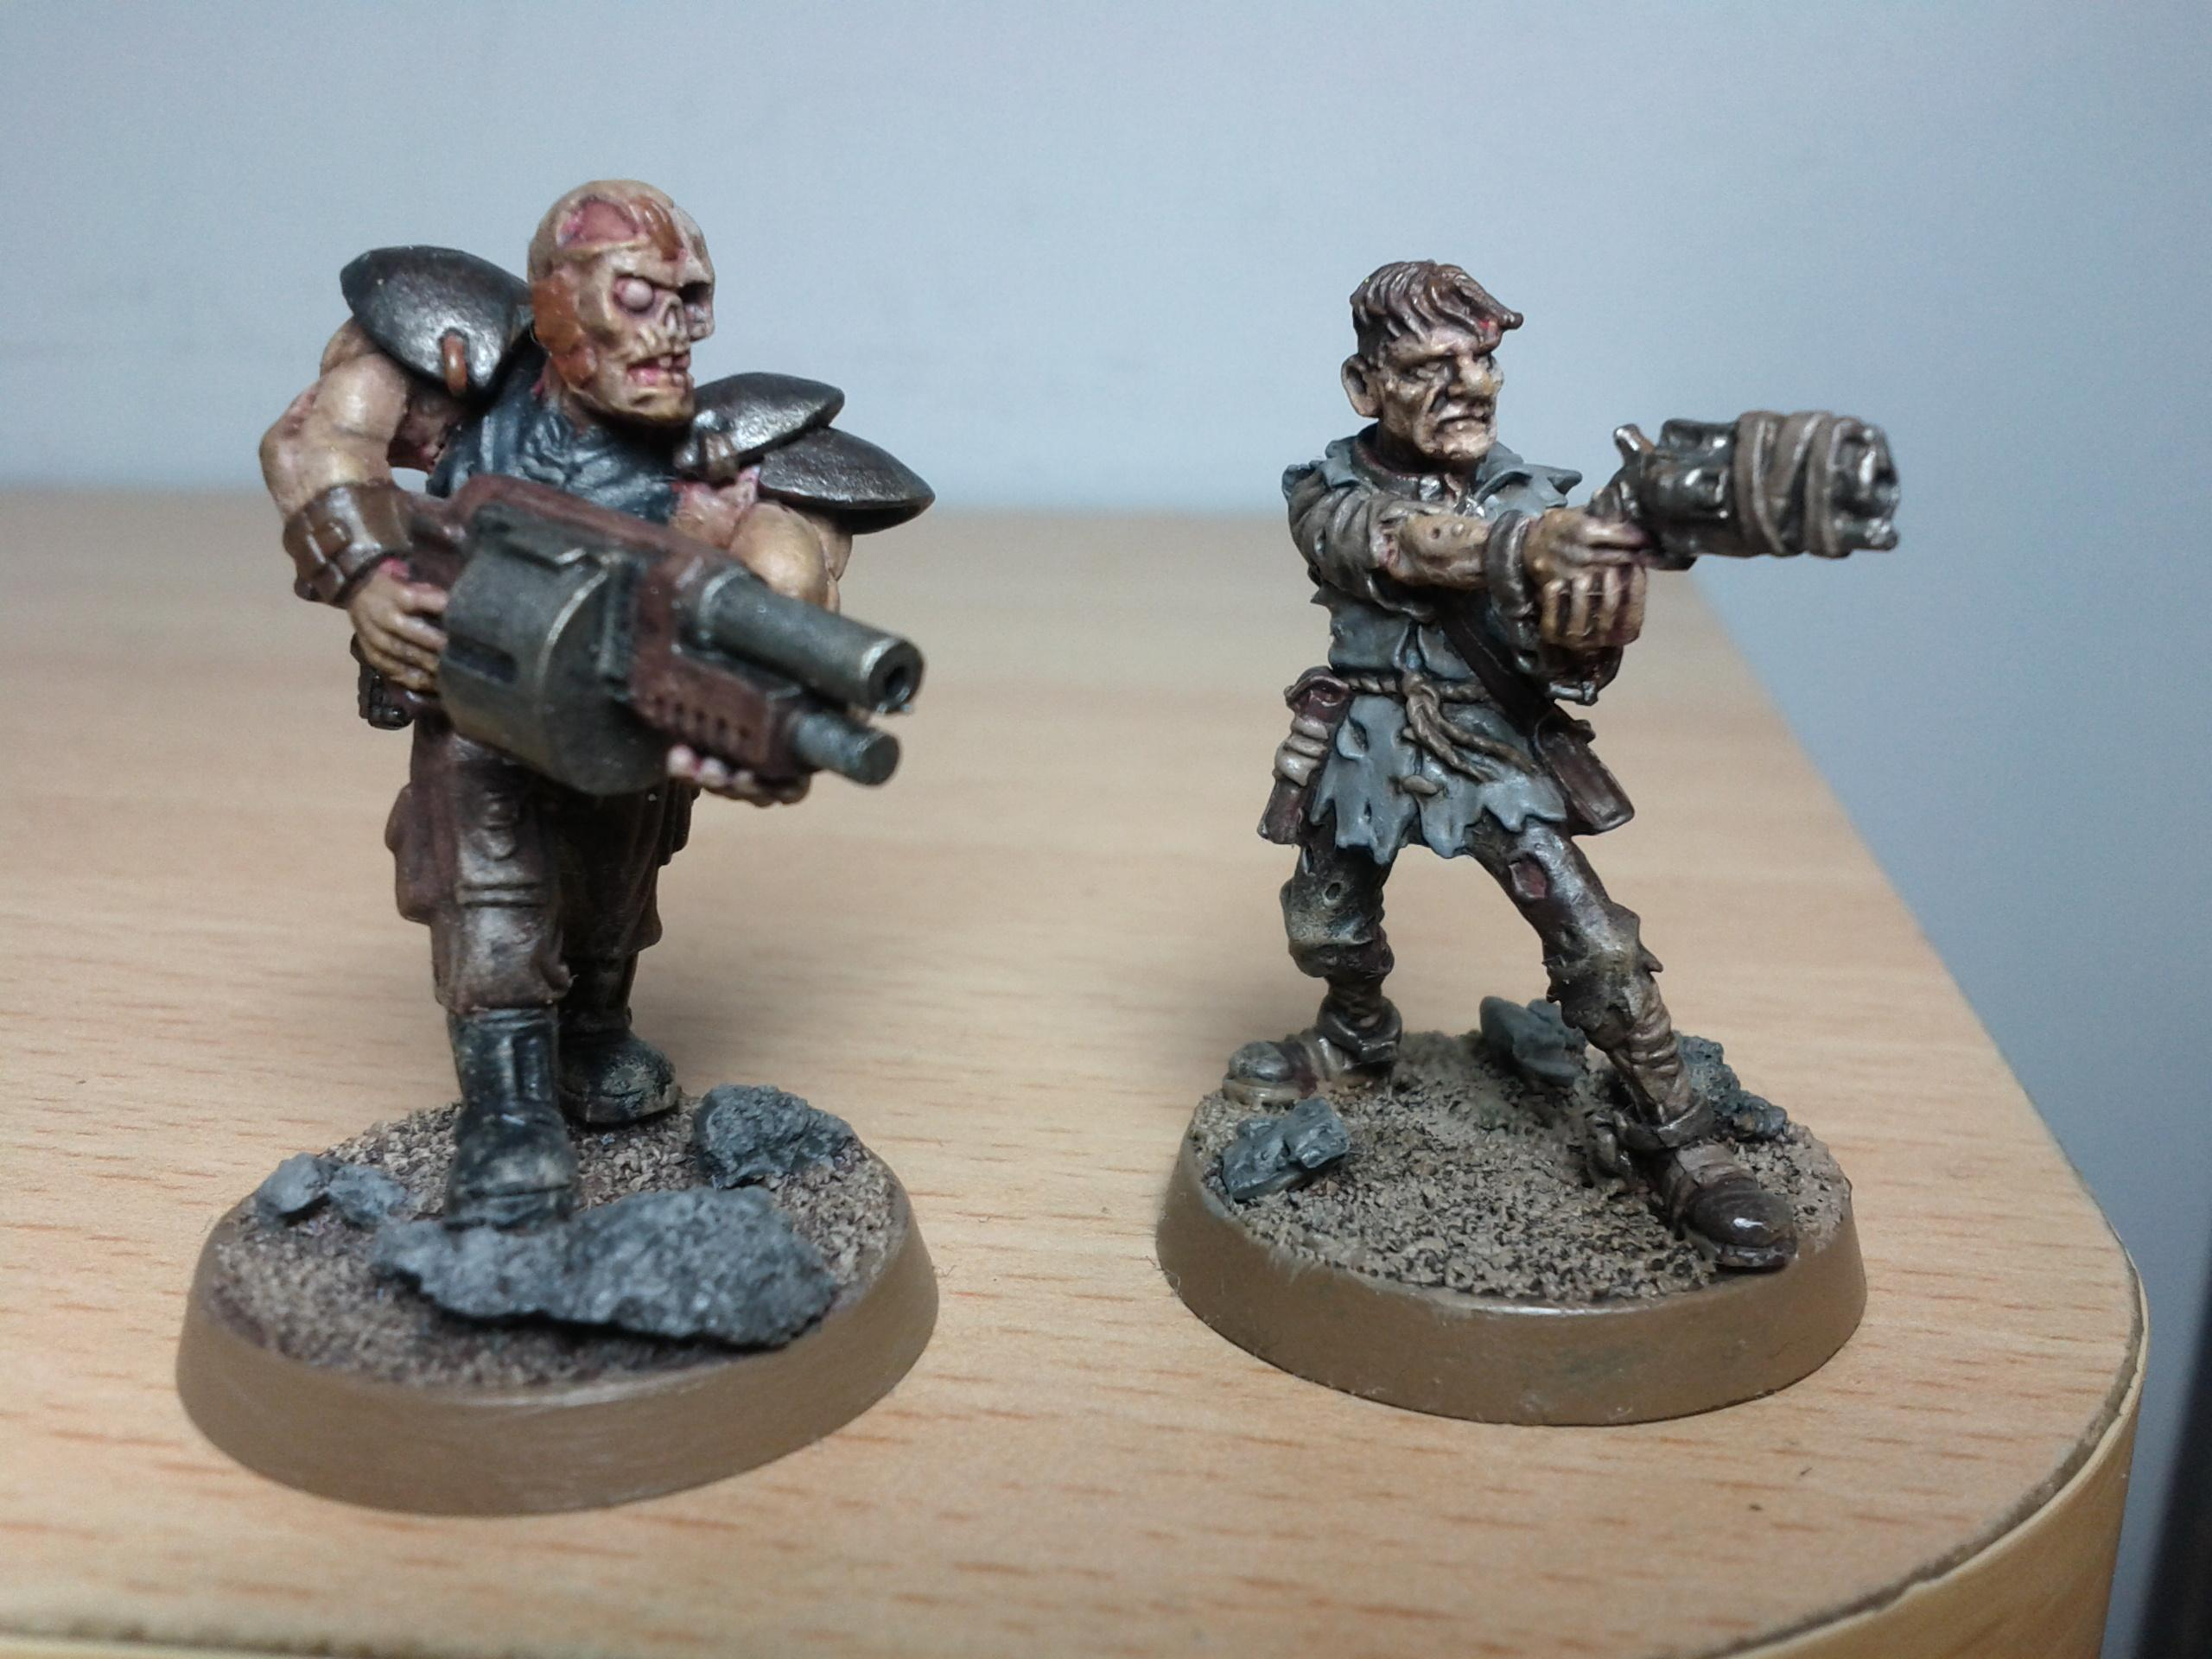 Charon, Fallout, Ghoul, Kit-bash, Scabbs